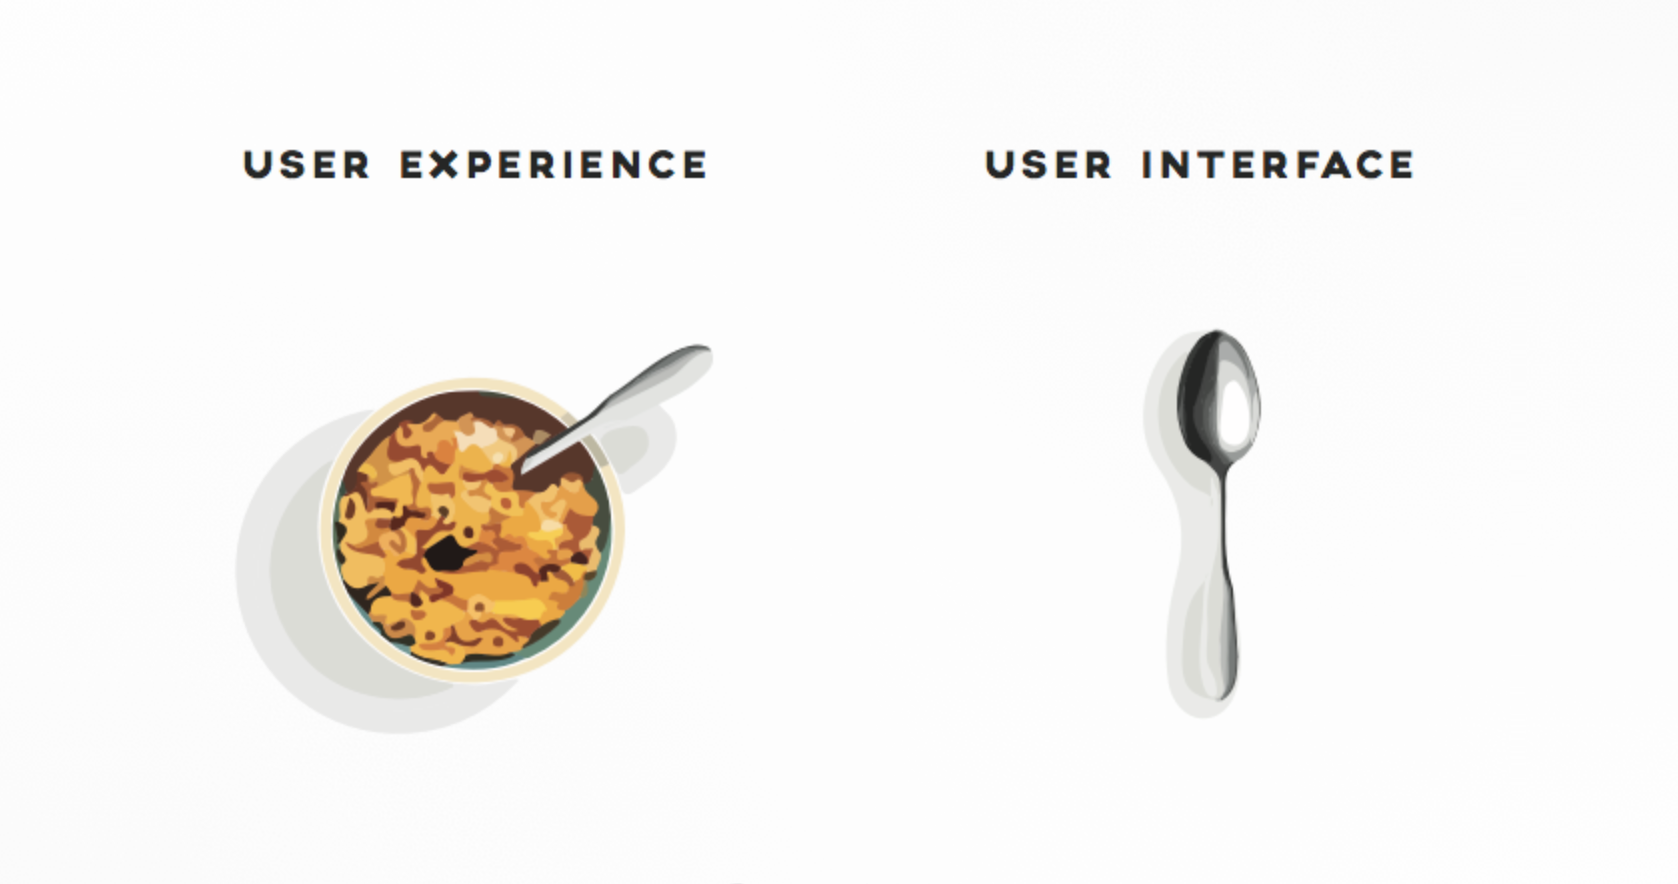 UX is not UI - the difference between UX and UI